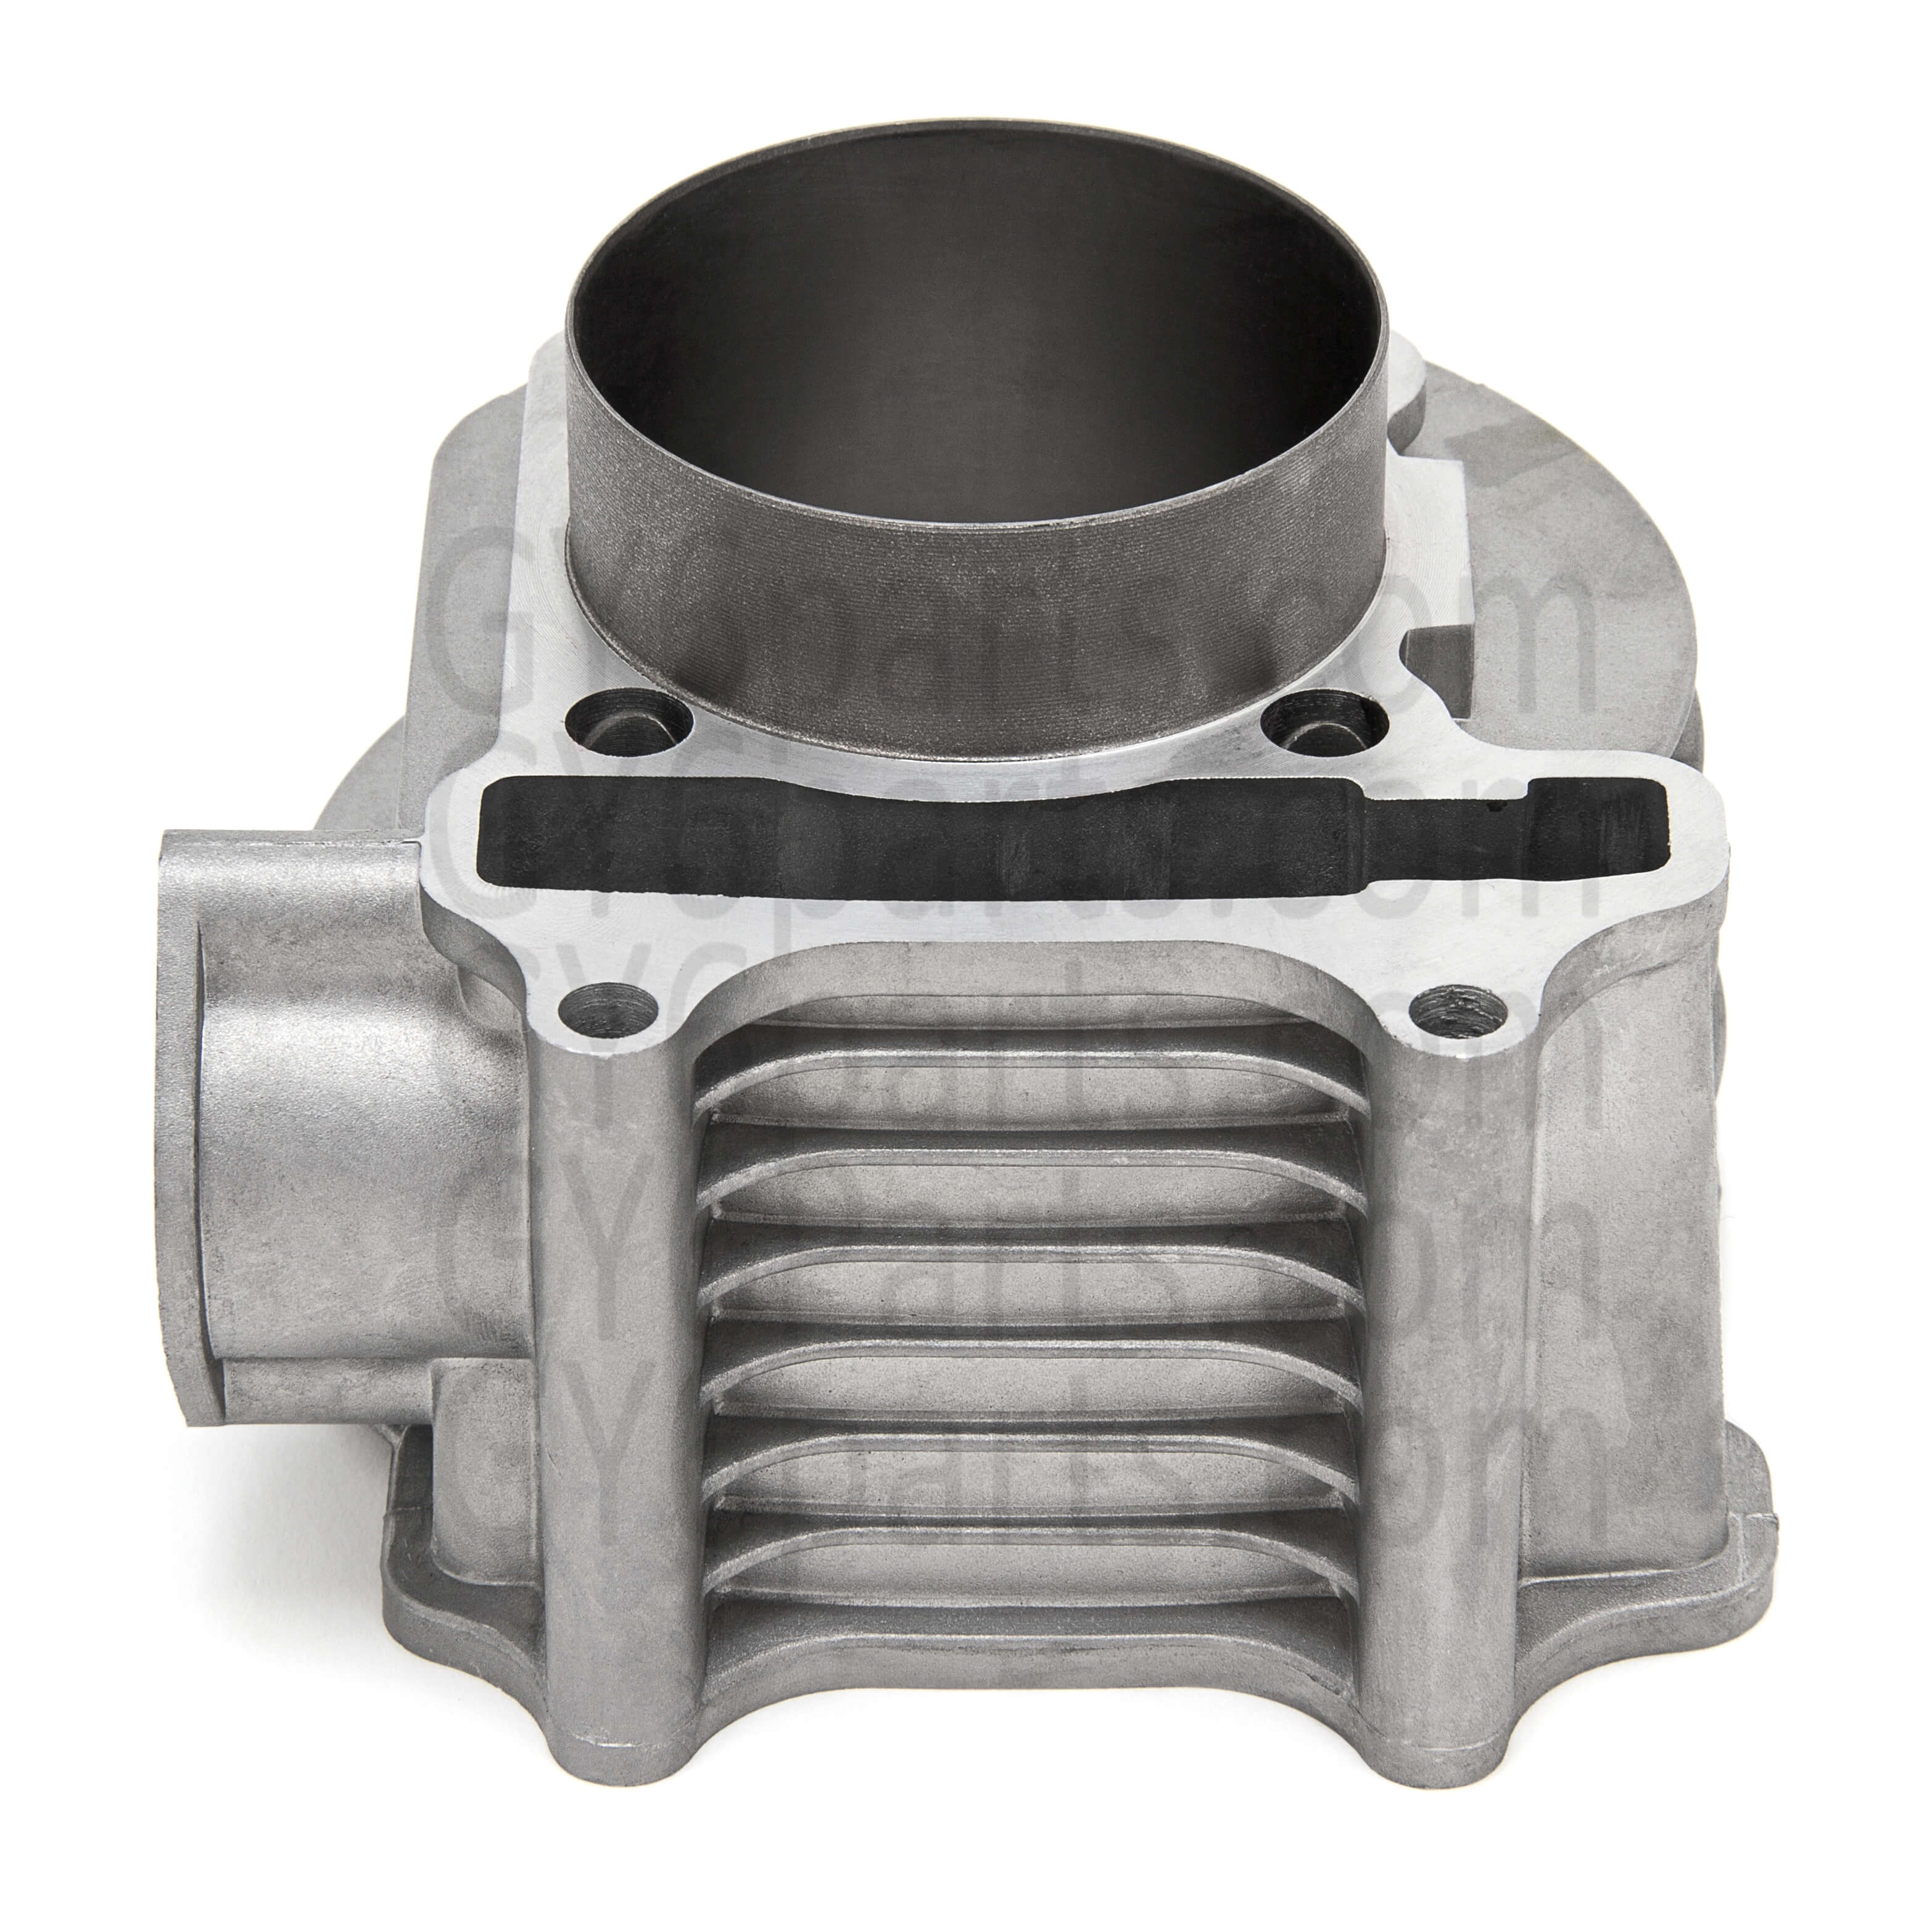 GY6 Performance Cylinder 76 54